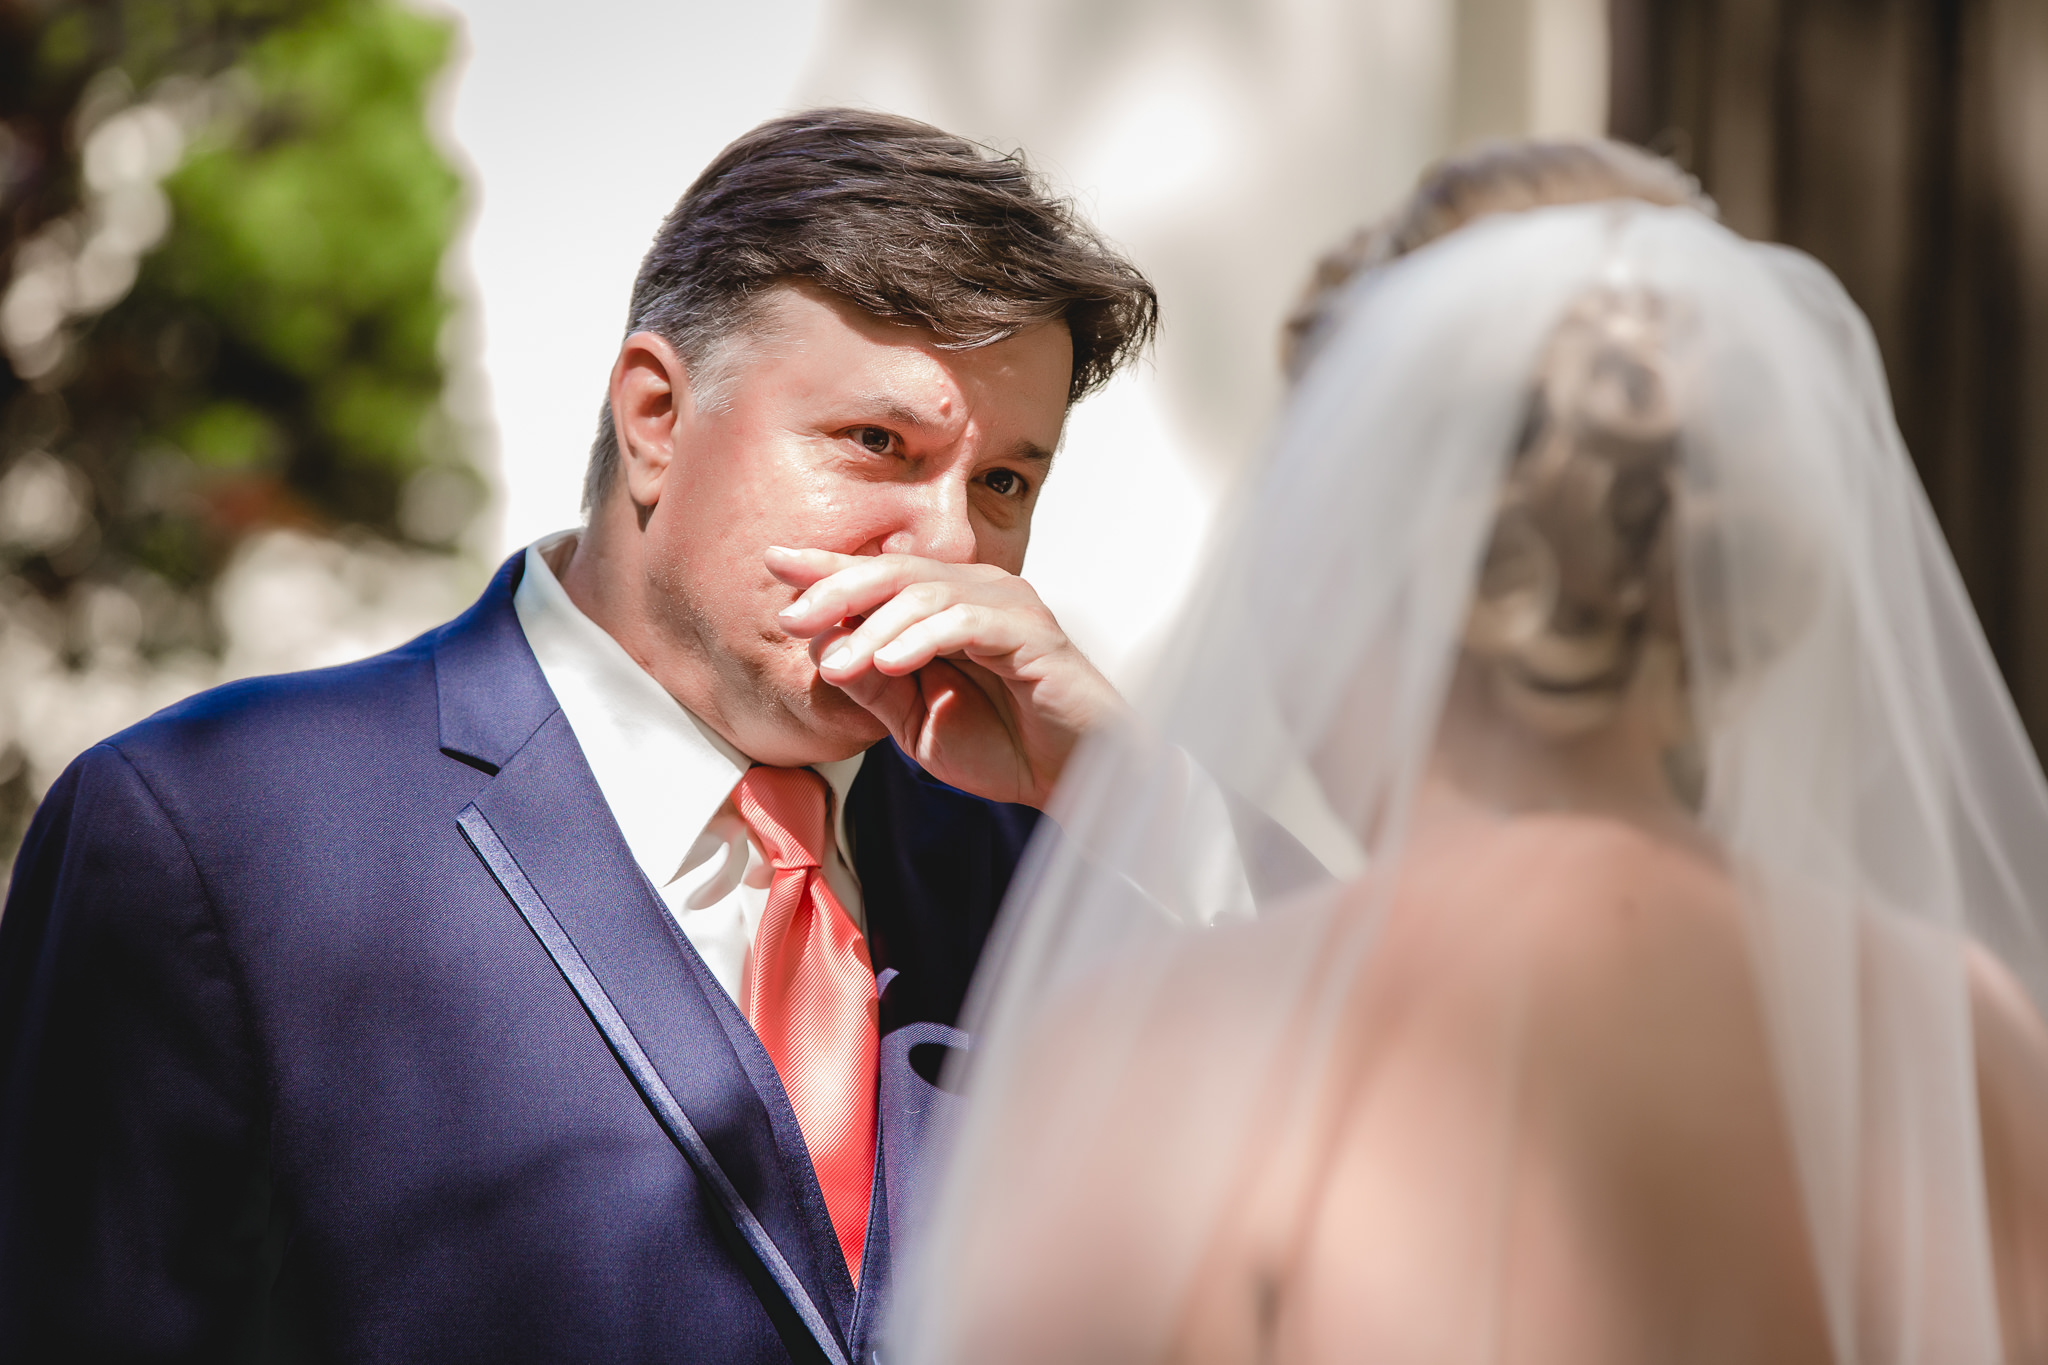 Dad can't believe how beautiful his daughter looks as a bride